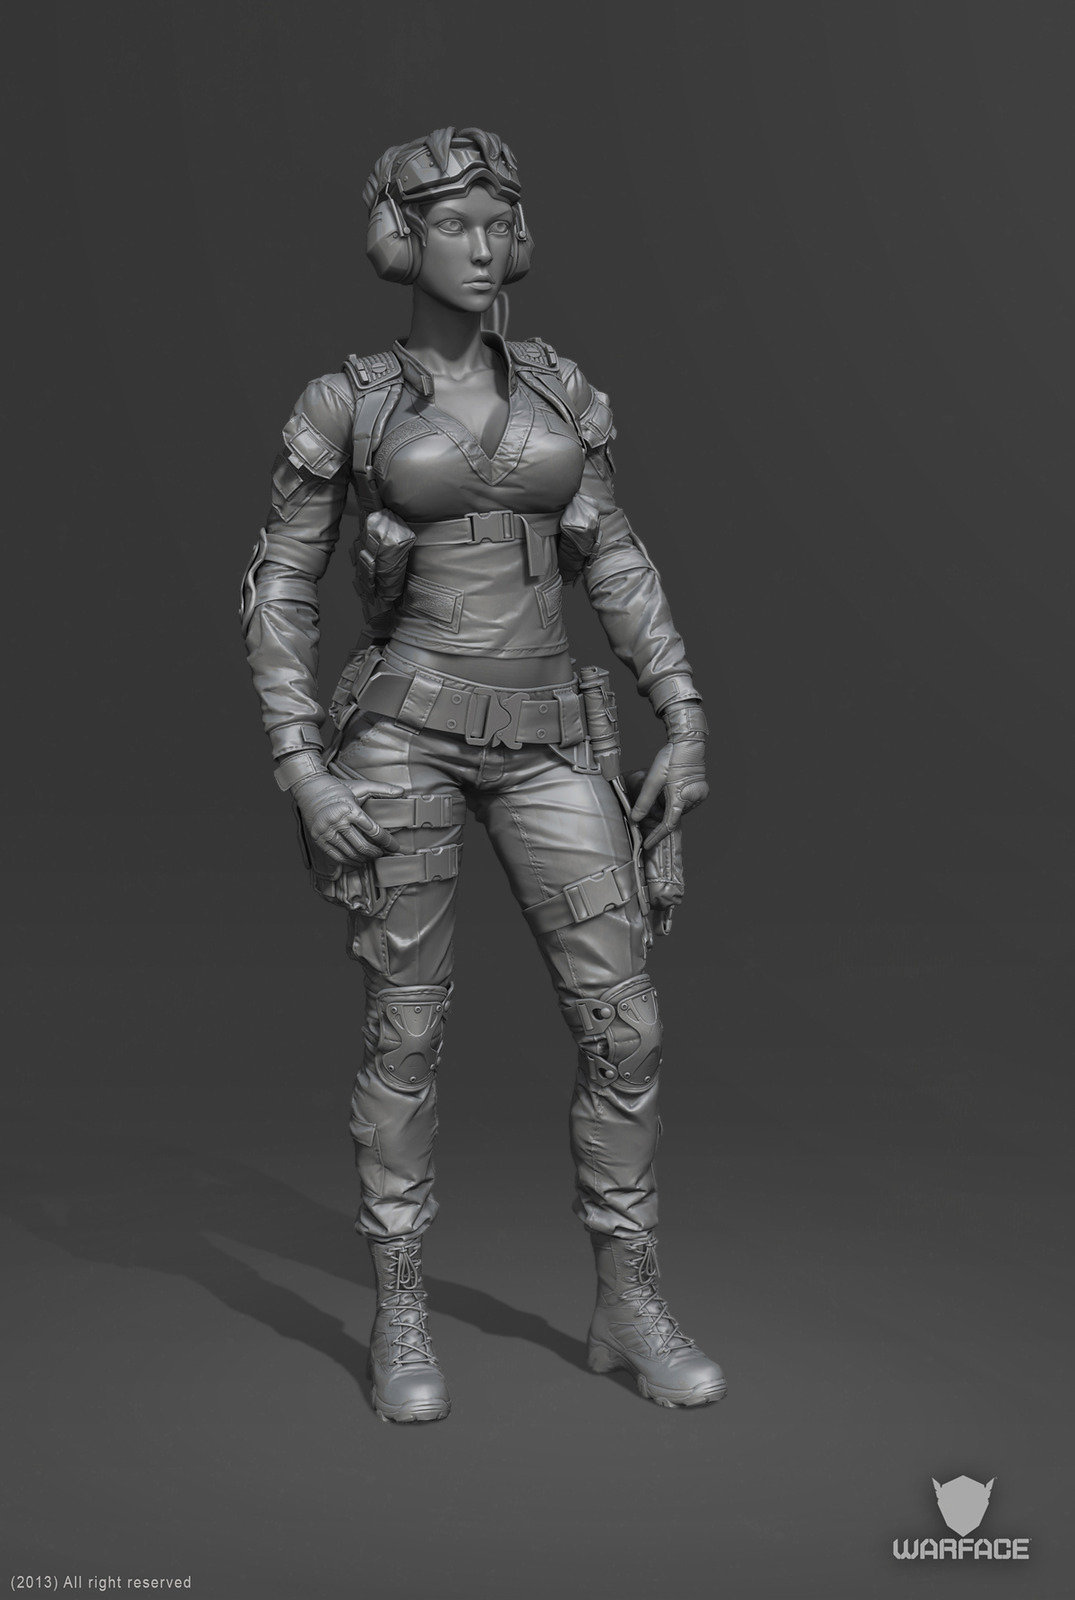 3d Models For Poser And Daz Studio: 3d Model For Crytek (engineer Soldier), Denis